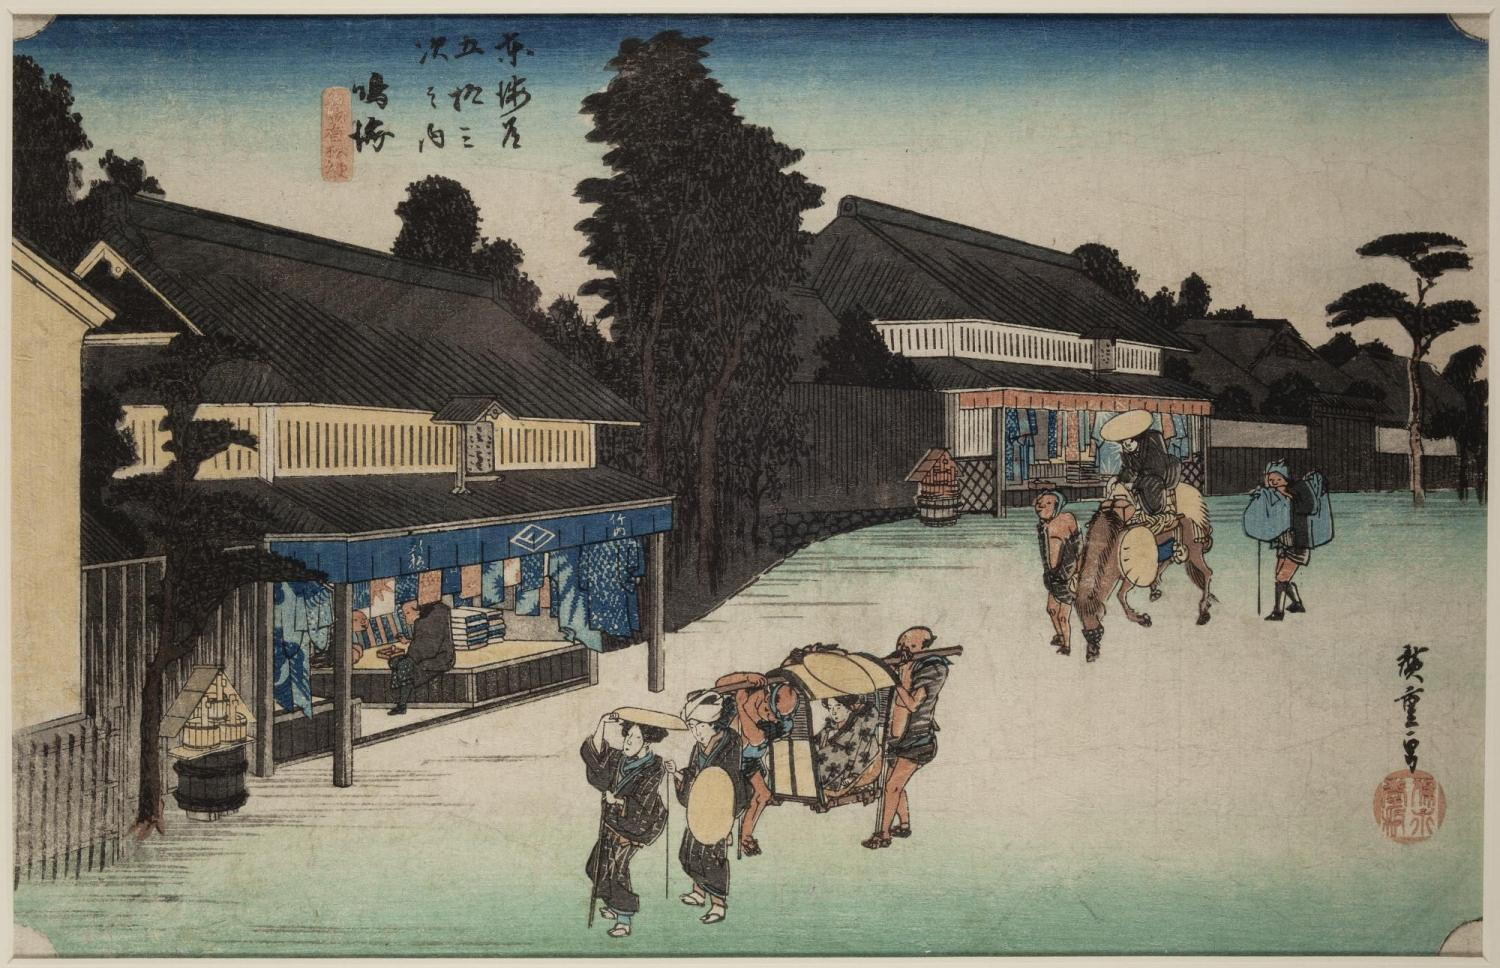 Japanese print of people carrying a palenquin